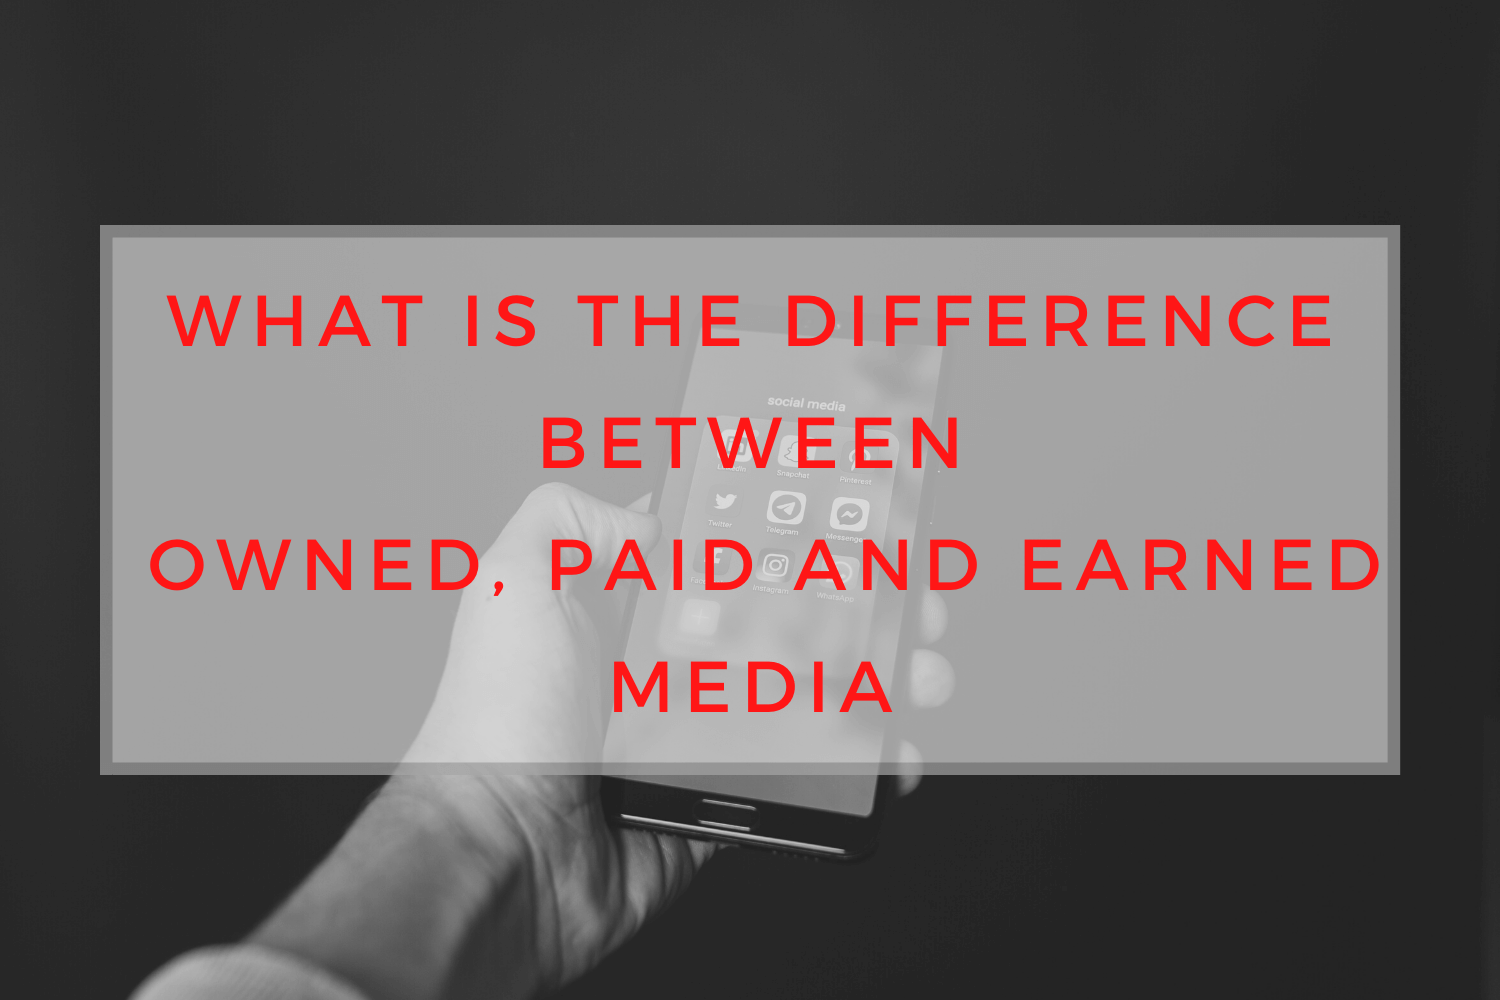 owned, paid and earned media, saralenaprobst.com, Blog about Music, Music Blog, BlackbirdPunk, Blackbirdpunk Consulting, Digital Consulting for the Music Industry, music industry digital entertainment agency, Berlin, berlin, digital, work digital, freelancer digital music industry